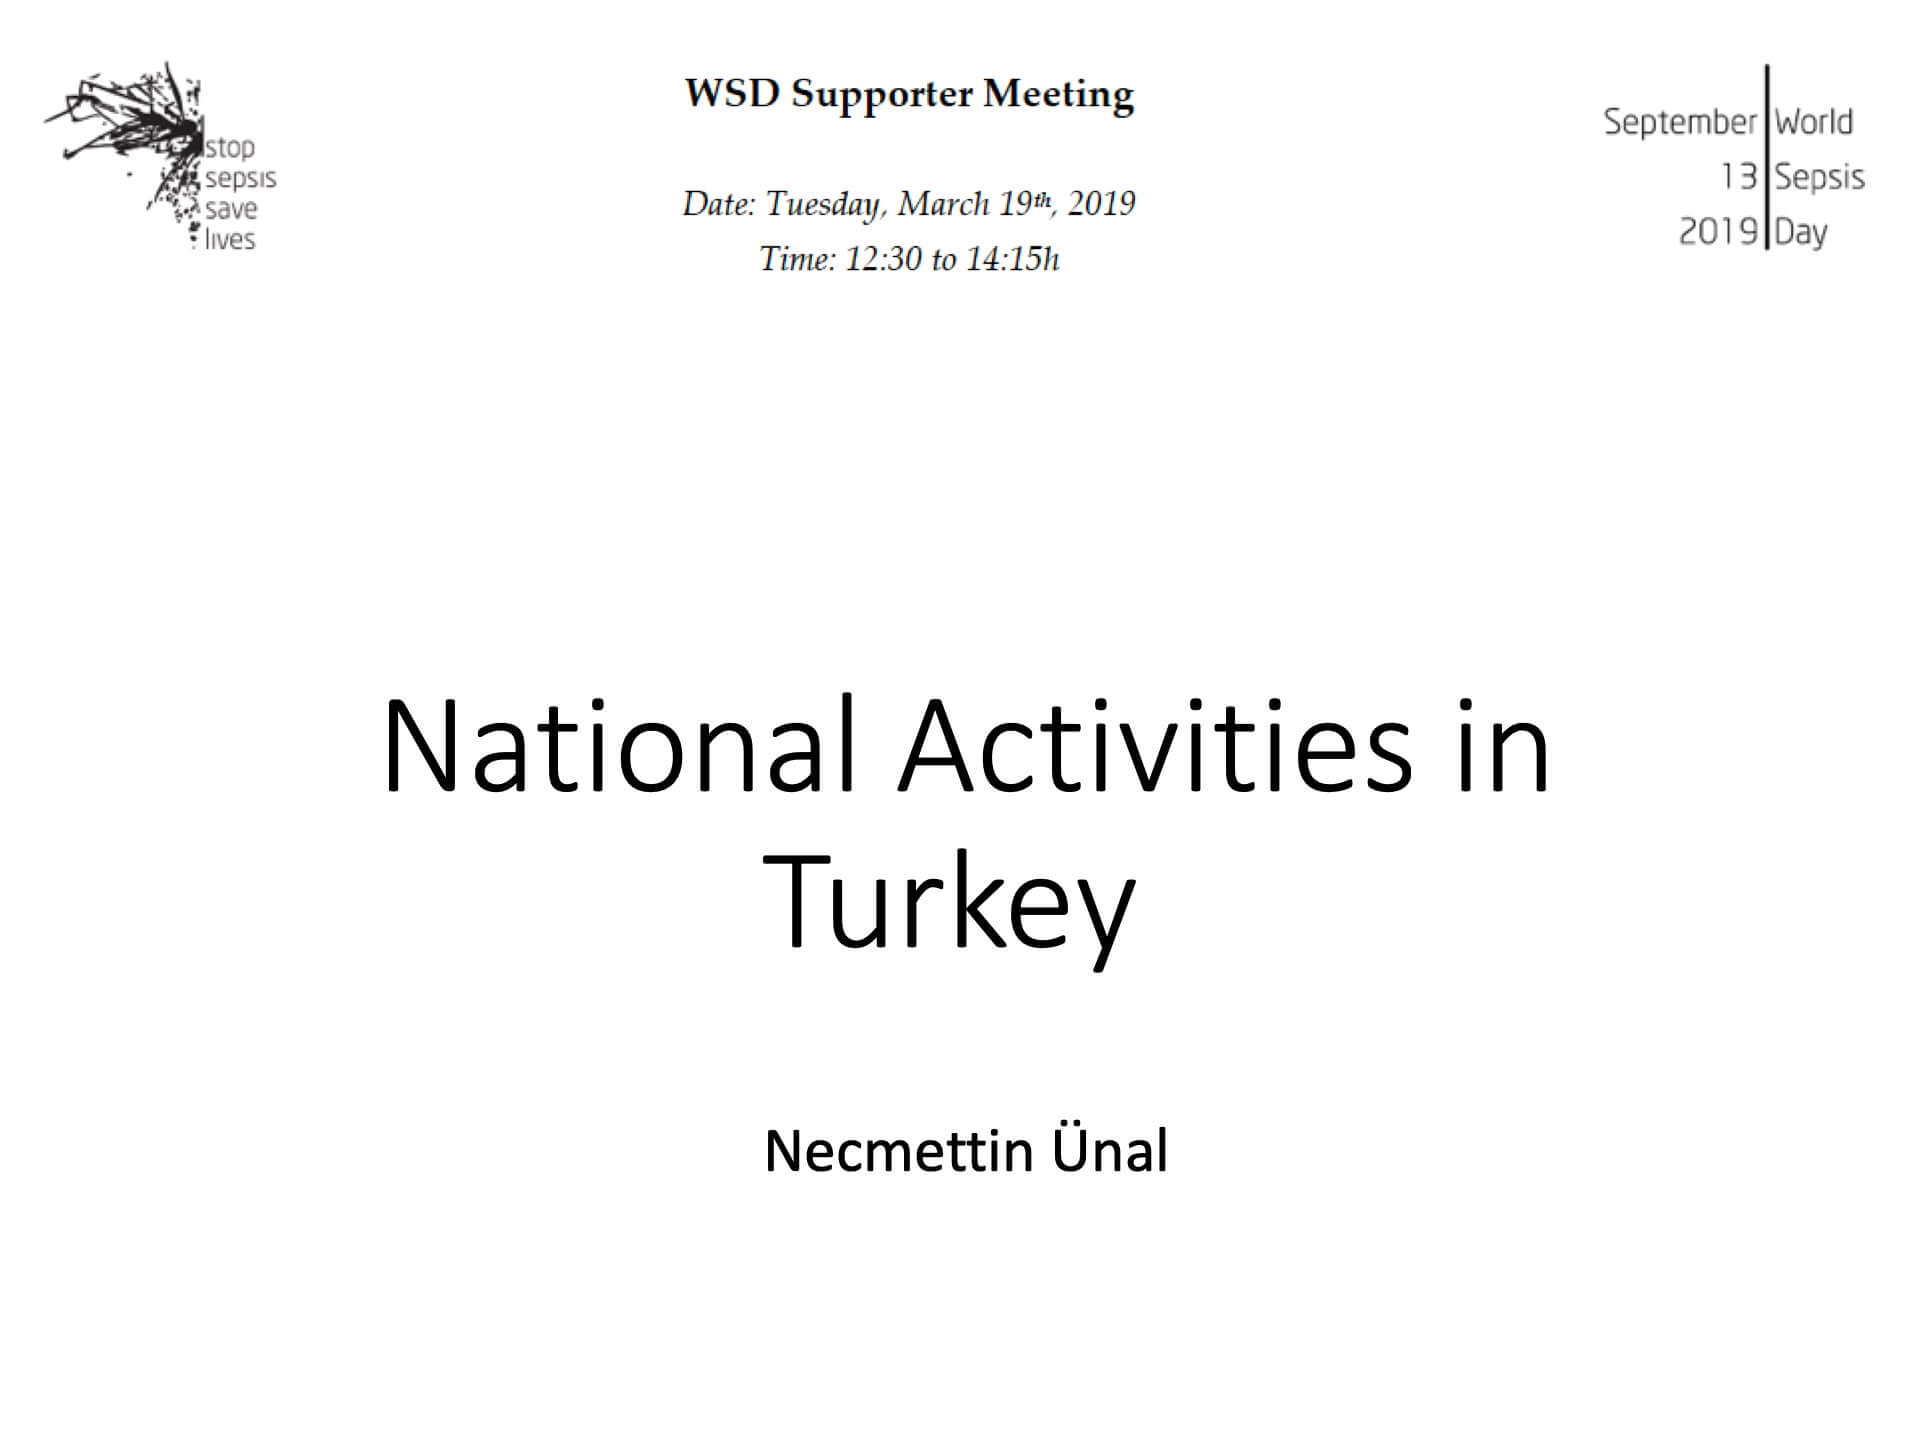 National Activities in Turkey1.jpeg